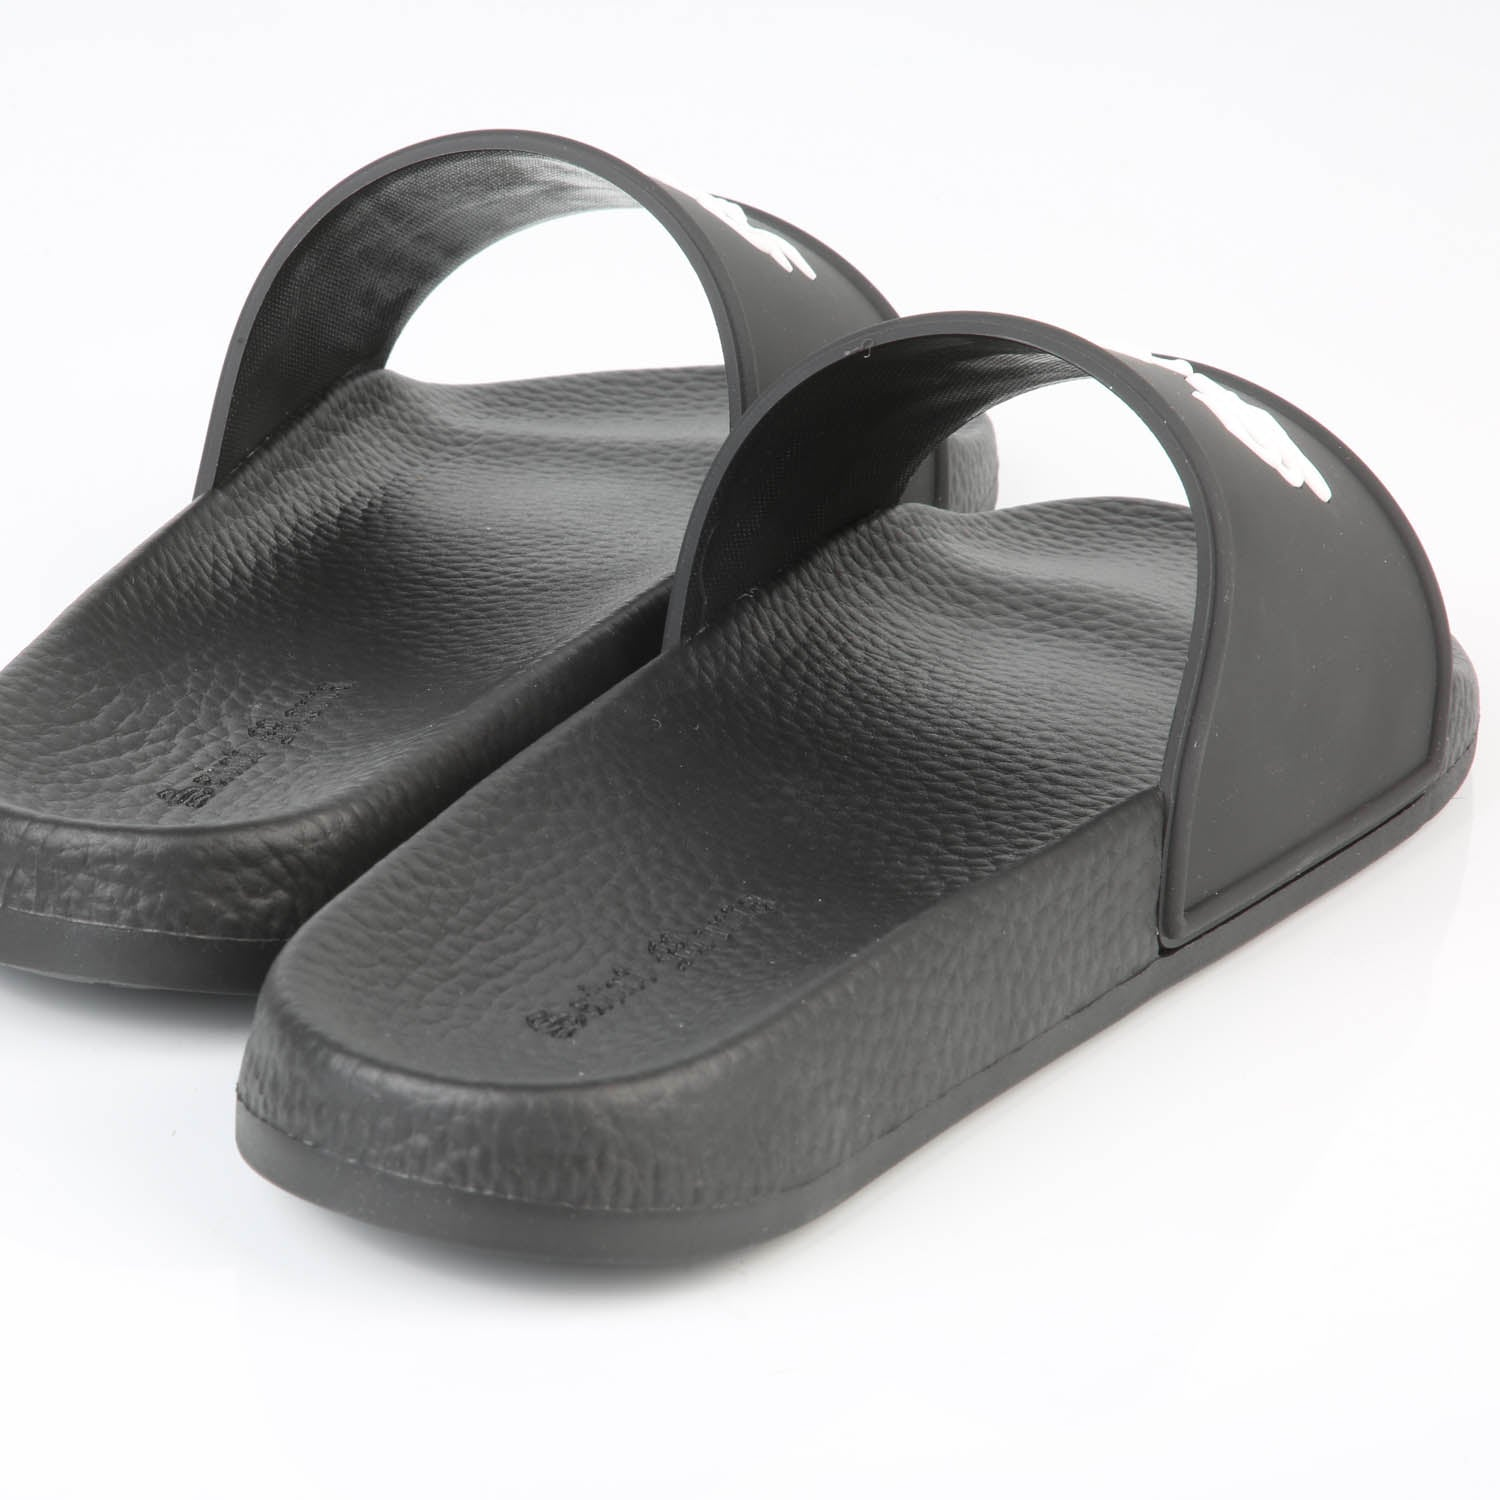 GATTICUS SLIDE - Black/White